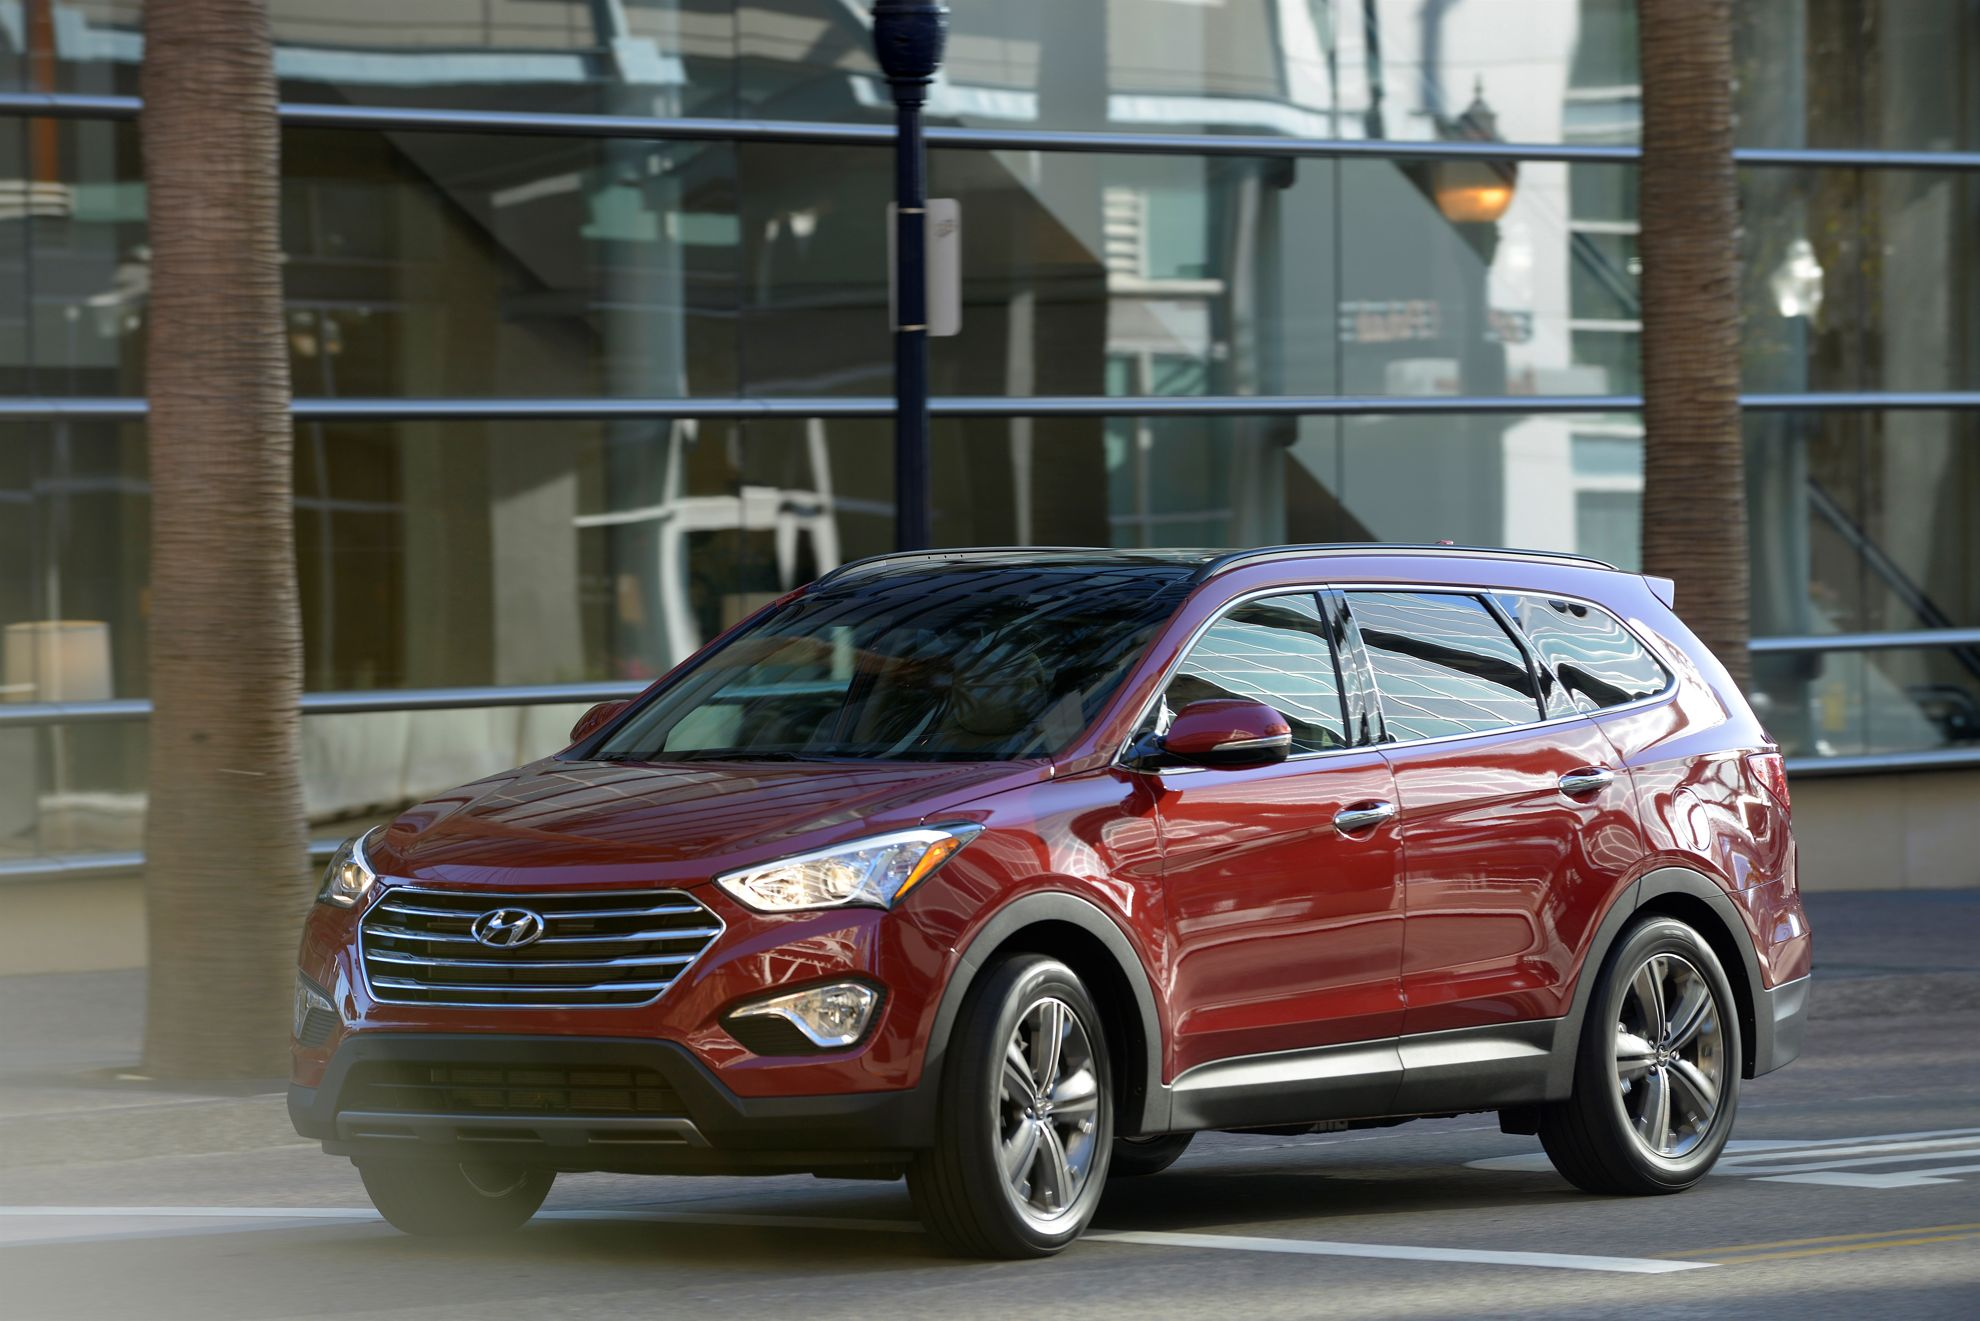 HYUNDAI SANTA FE NAMED A BEST CAR FOR THE MONEY BY U.S. NEWS & WORLD